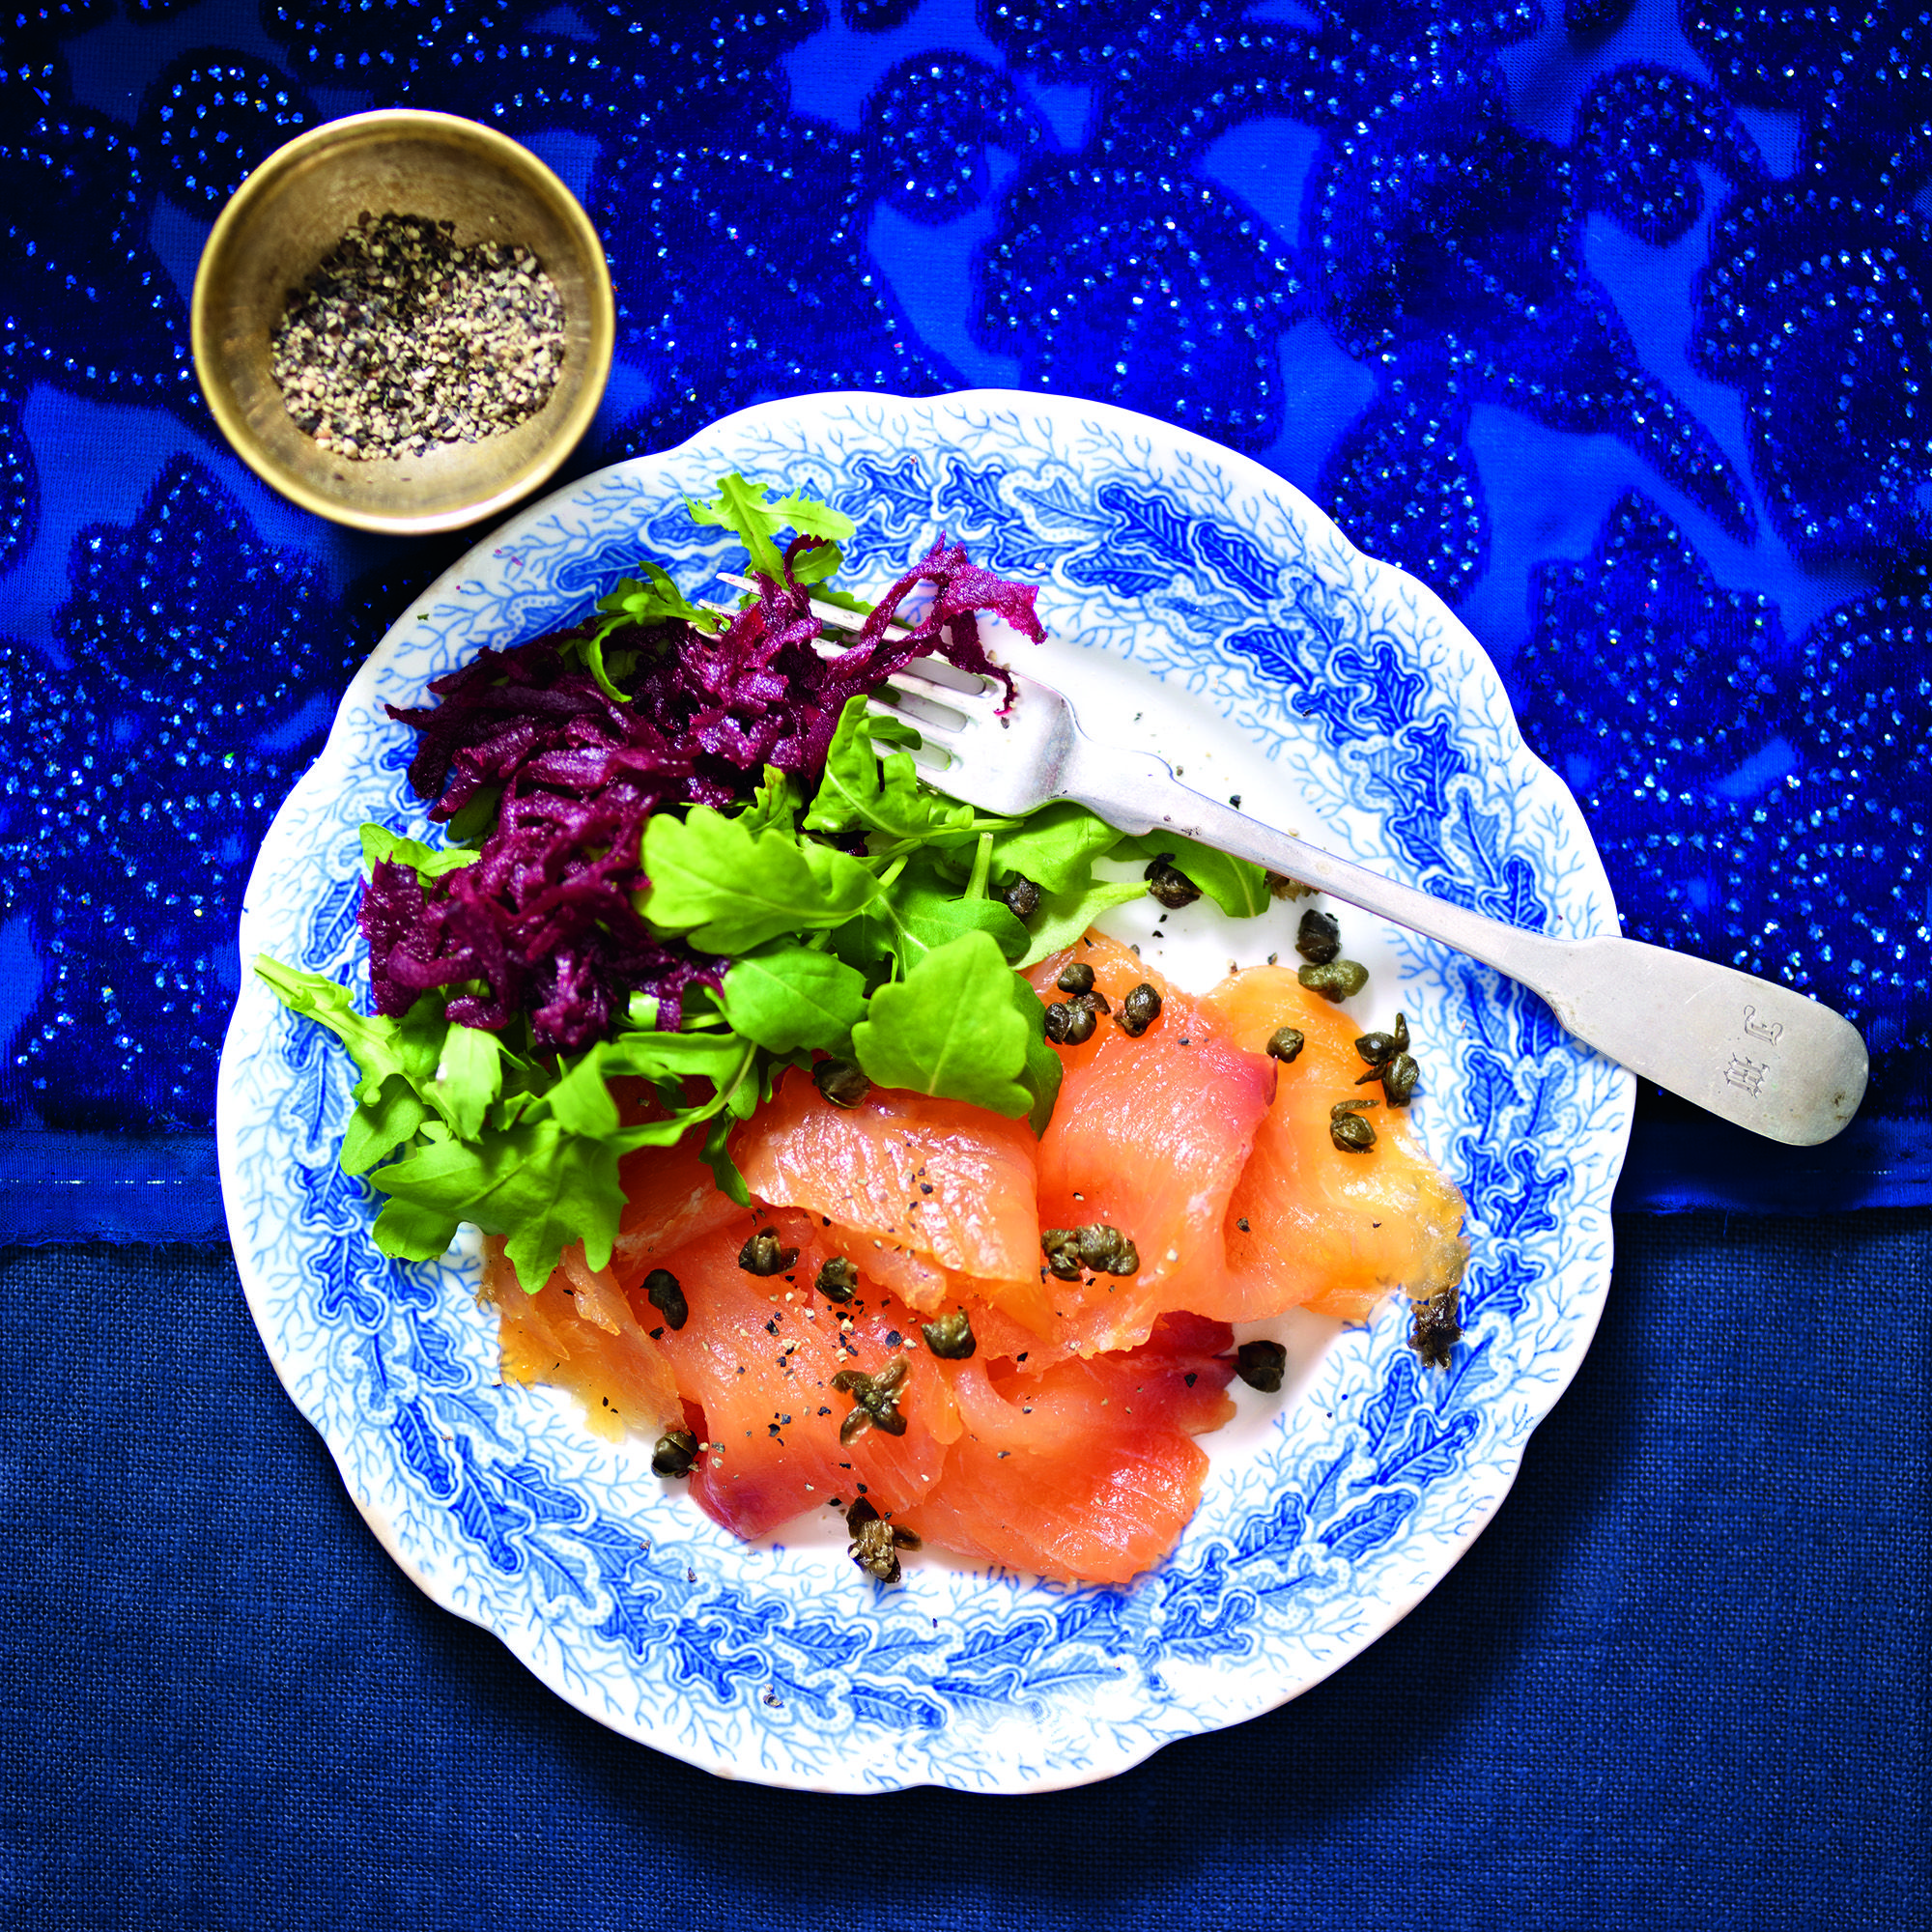 Ideas For Dinner Party Starters Part - 46: Smoked Salmon Starter Recipes Are Ideal For A Dinner Party Or Even For  Christmas Dinner, Including Smoked Salmon On Rye With Caviar, Mini Smoked  Salmon ...